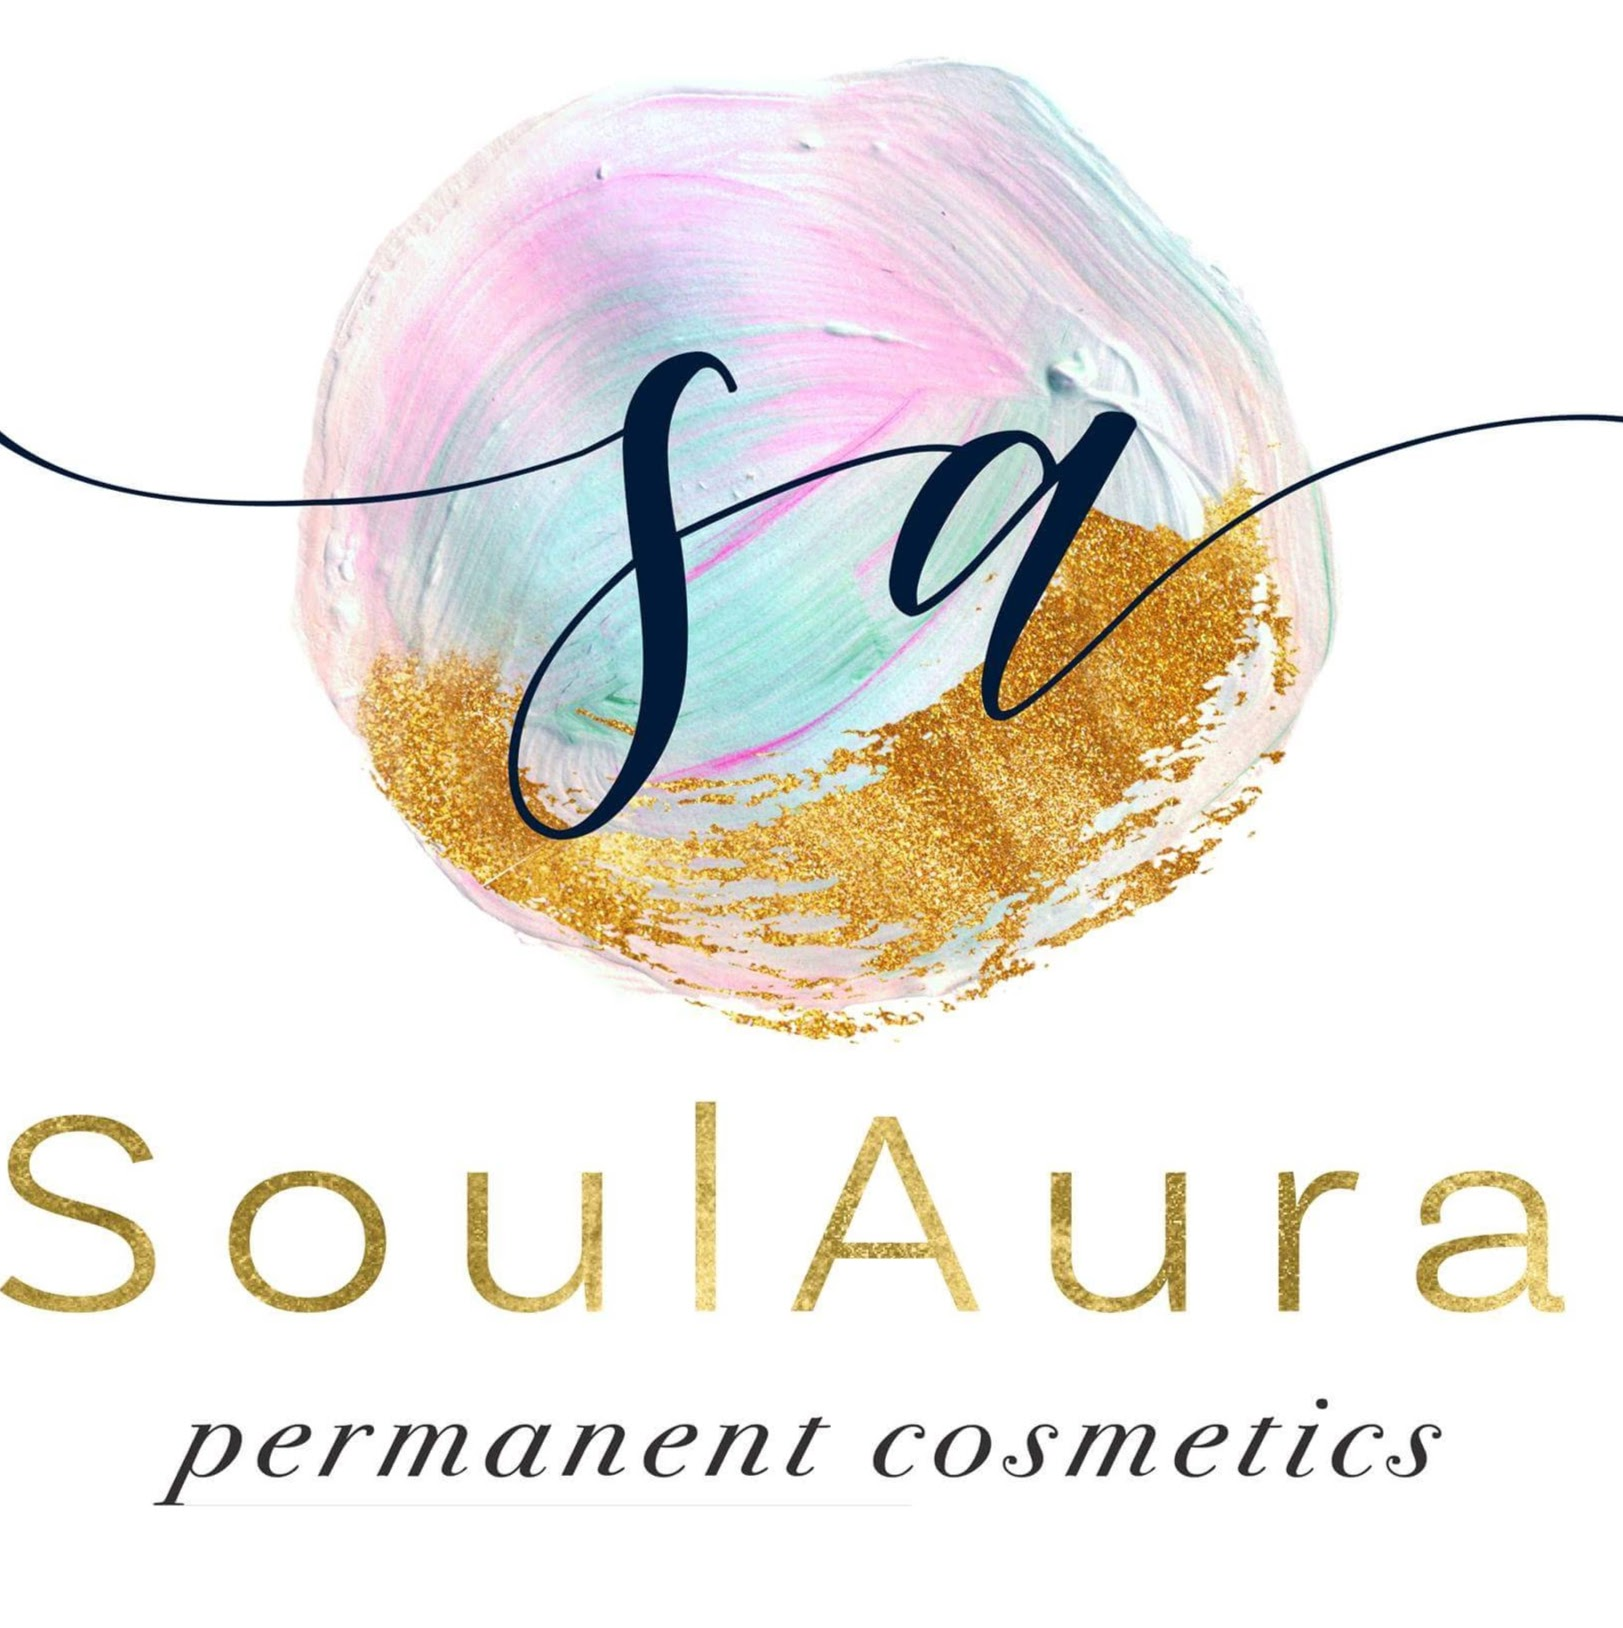 SoulAura Permanent Cosmetics and Microblading